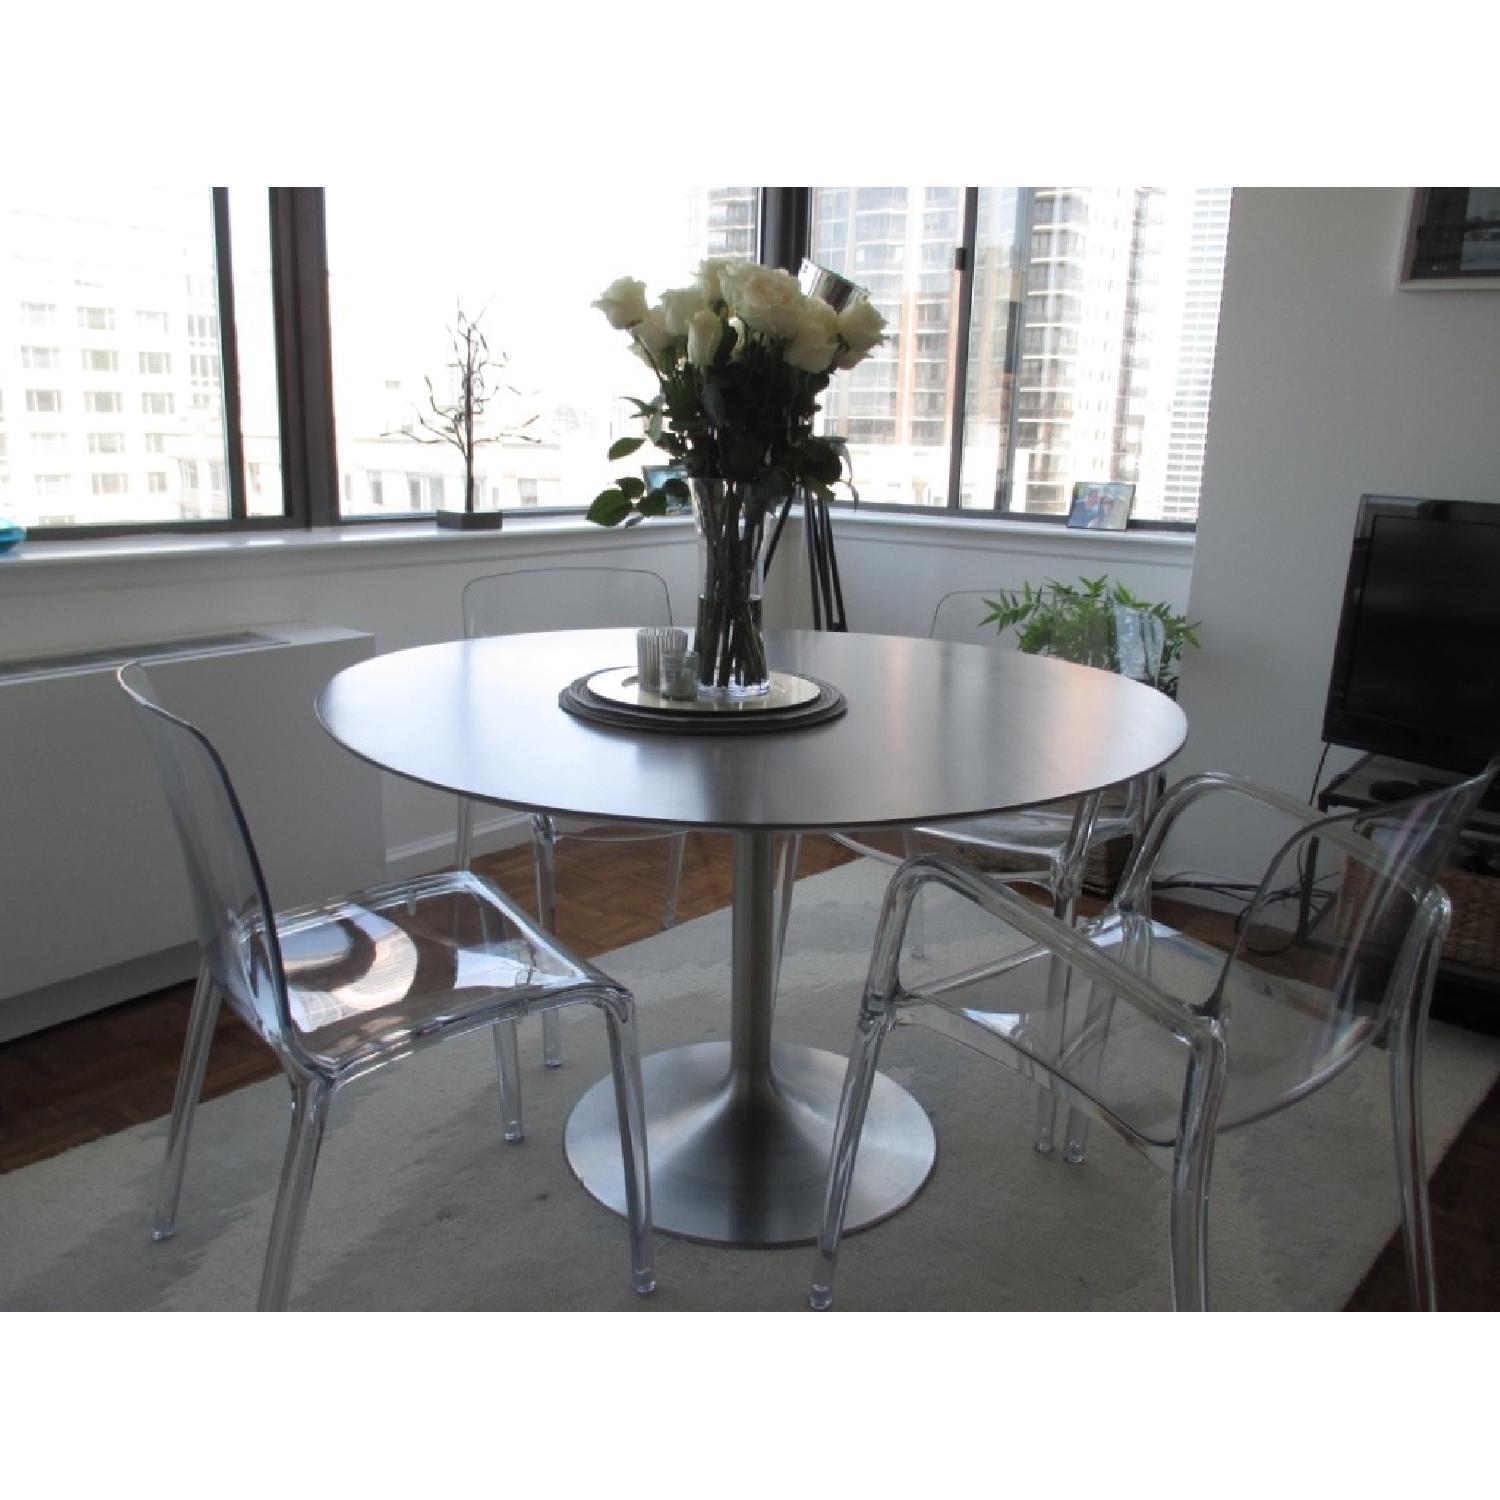 Room & Board Aria Dining Table - image-2